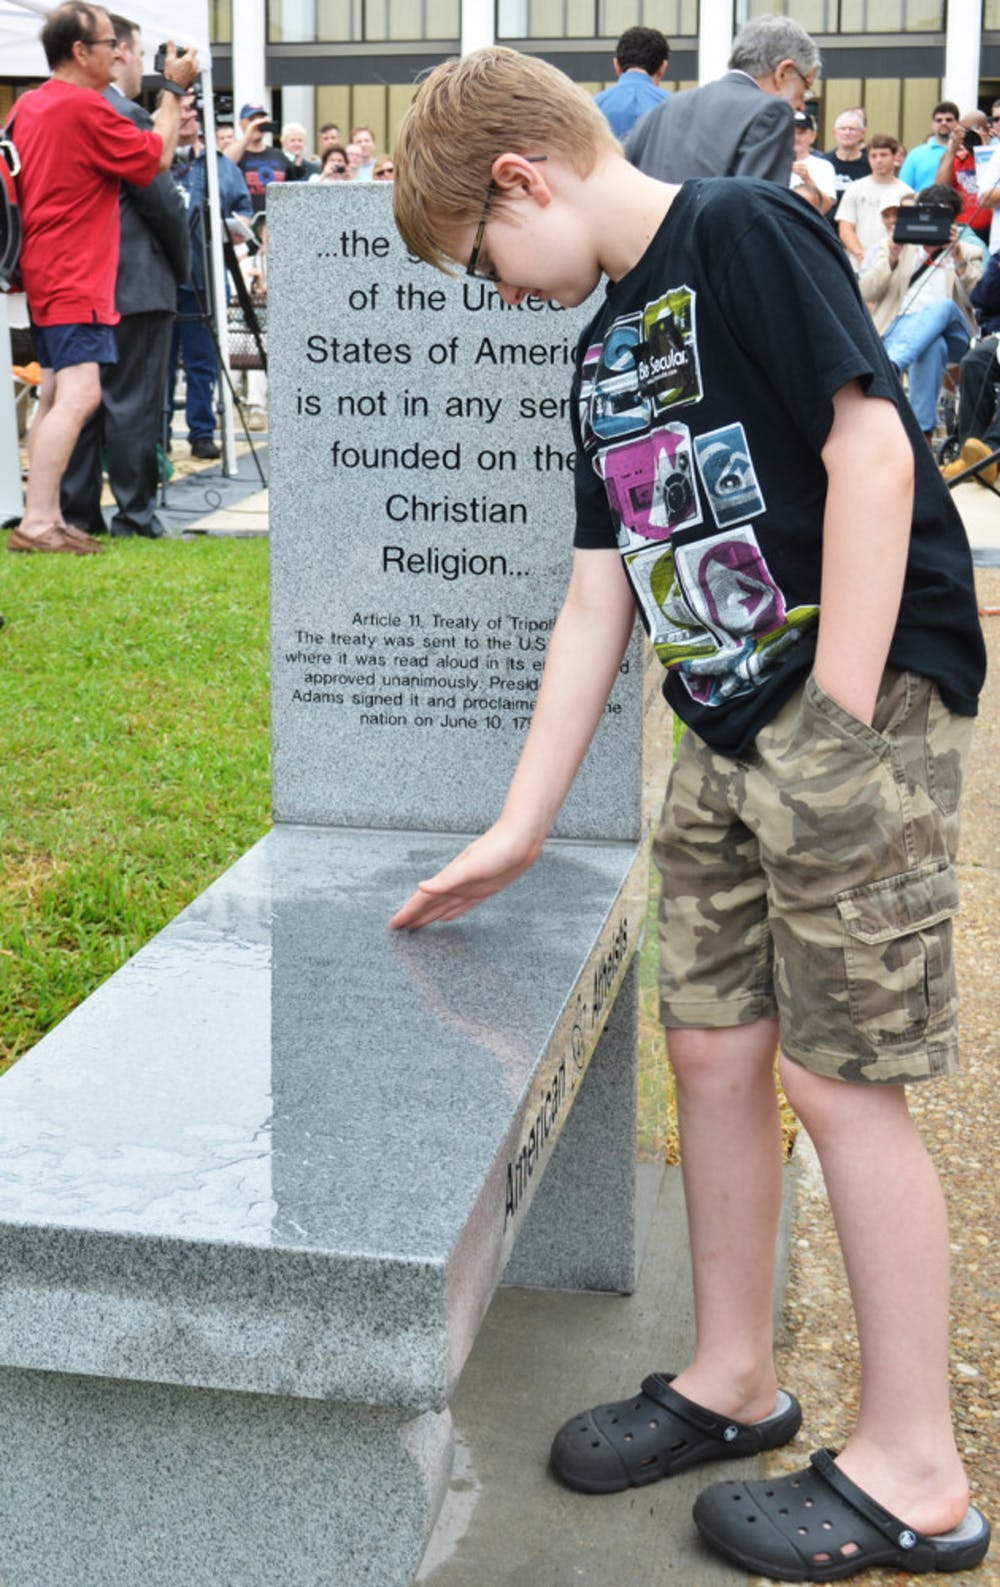 <p>Chandler Allen, 10, of Orlando, was the first to sit on the newly revealed atheist monument outside the Bradford County Courthouse.</p><div> </div>